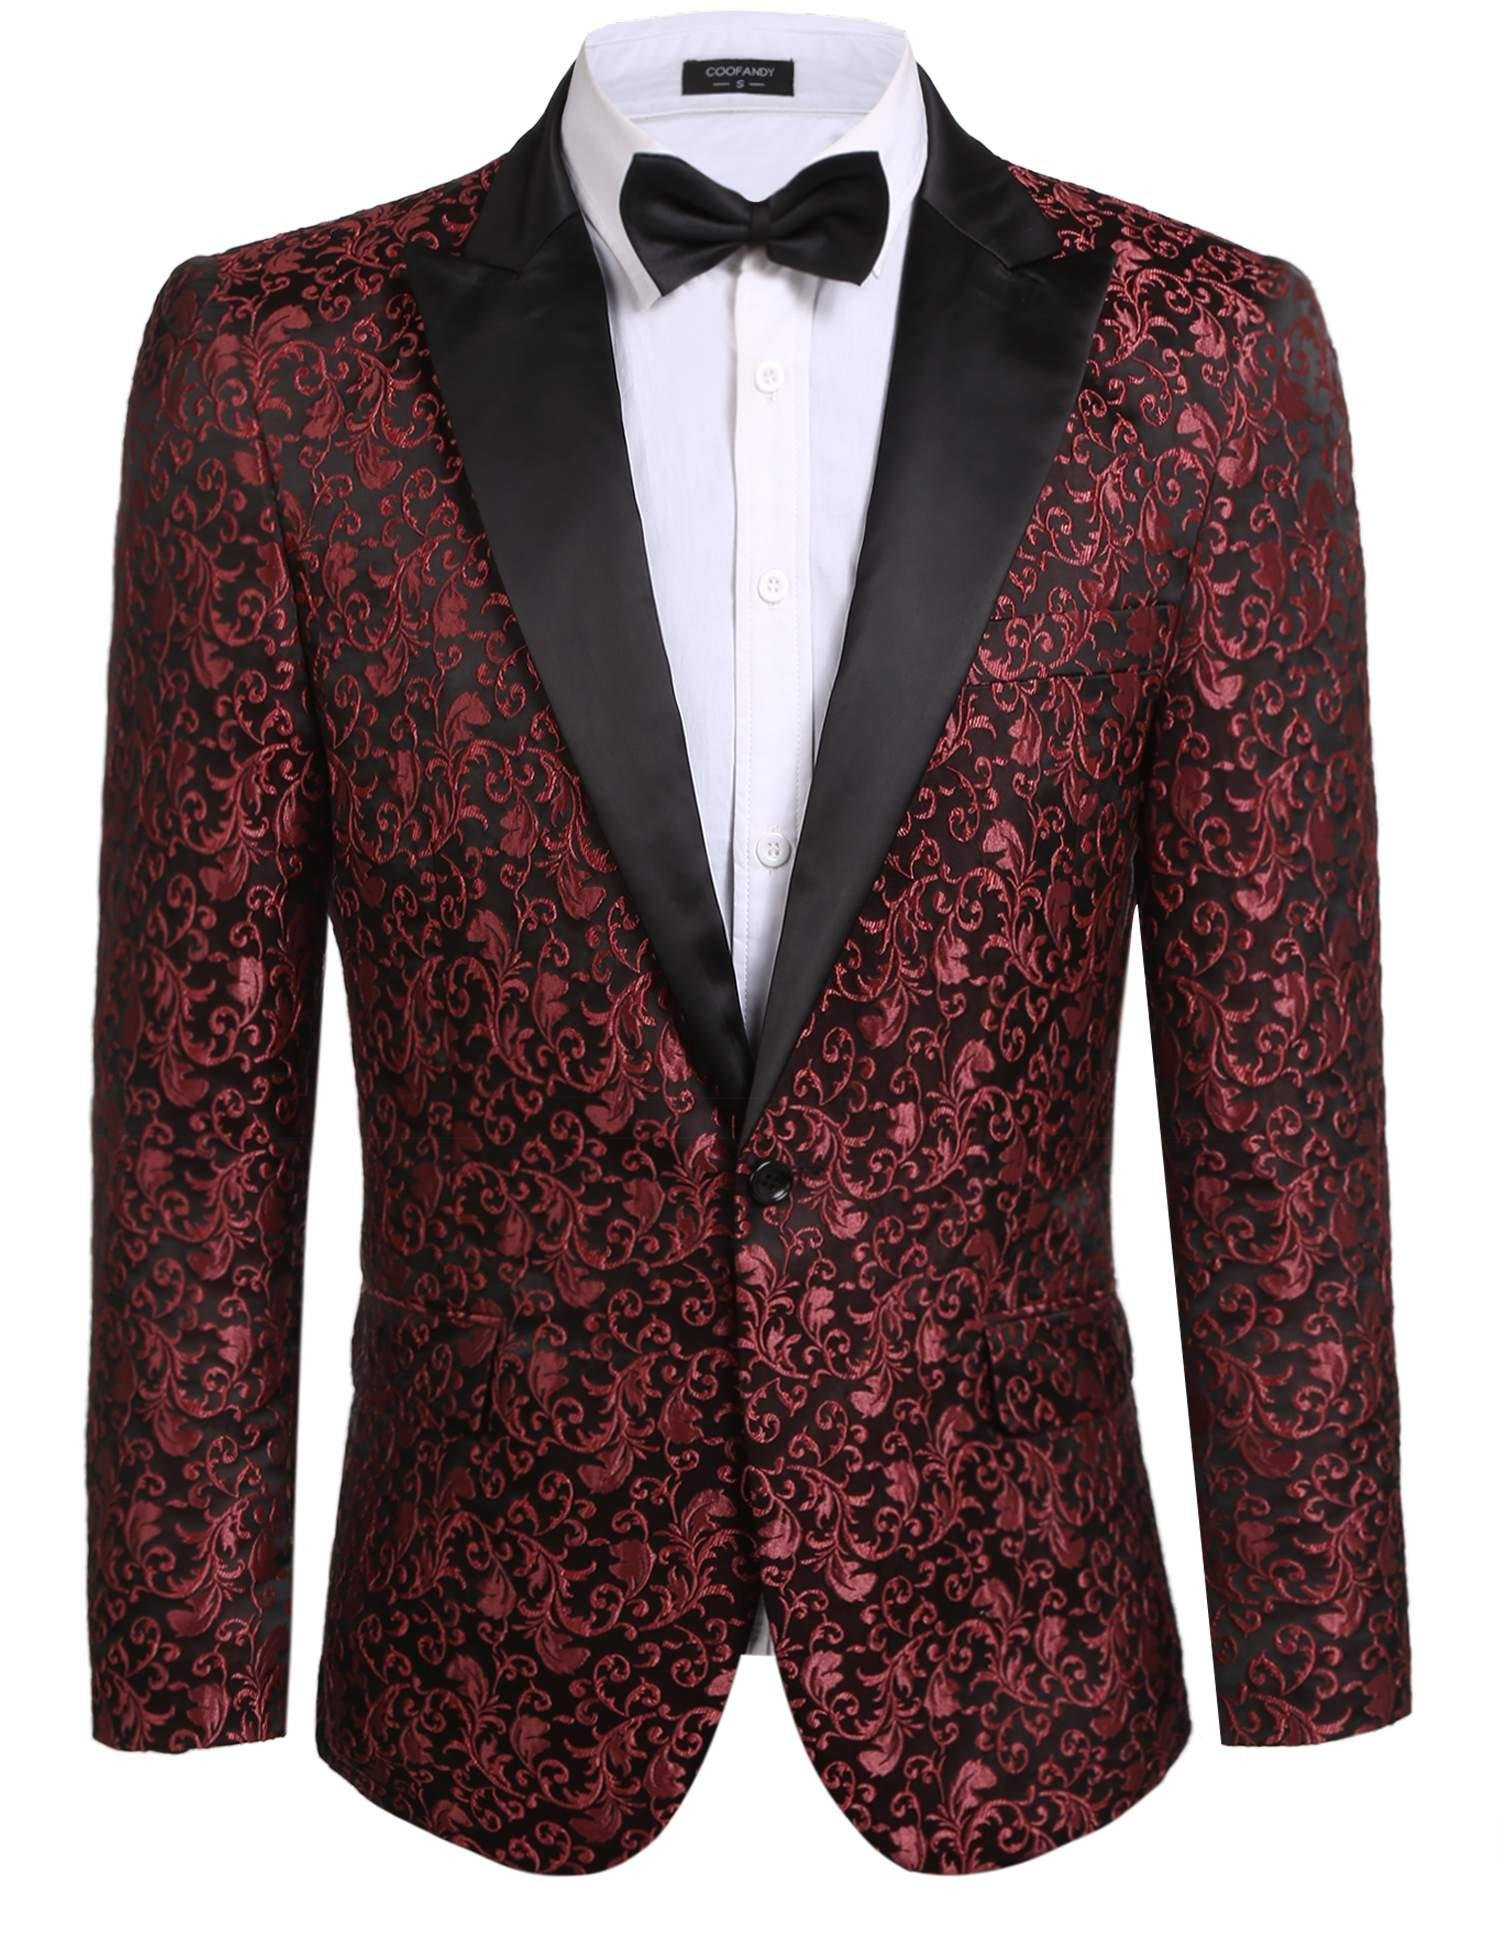 JINIDU Men's Floral Party Dress Suit Stylish Dinner Jacket Wedding Blazer Prom Tuxedo